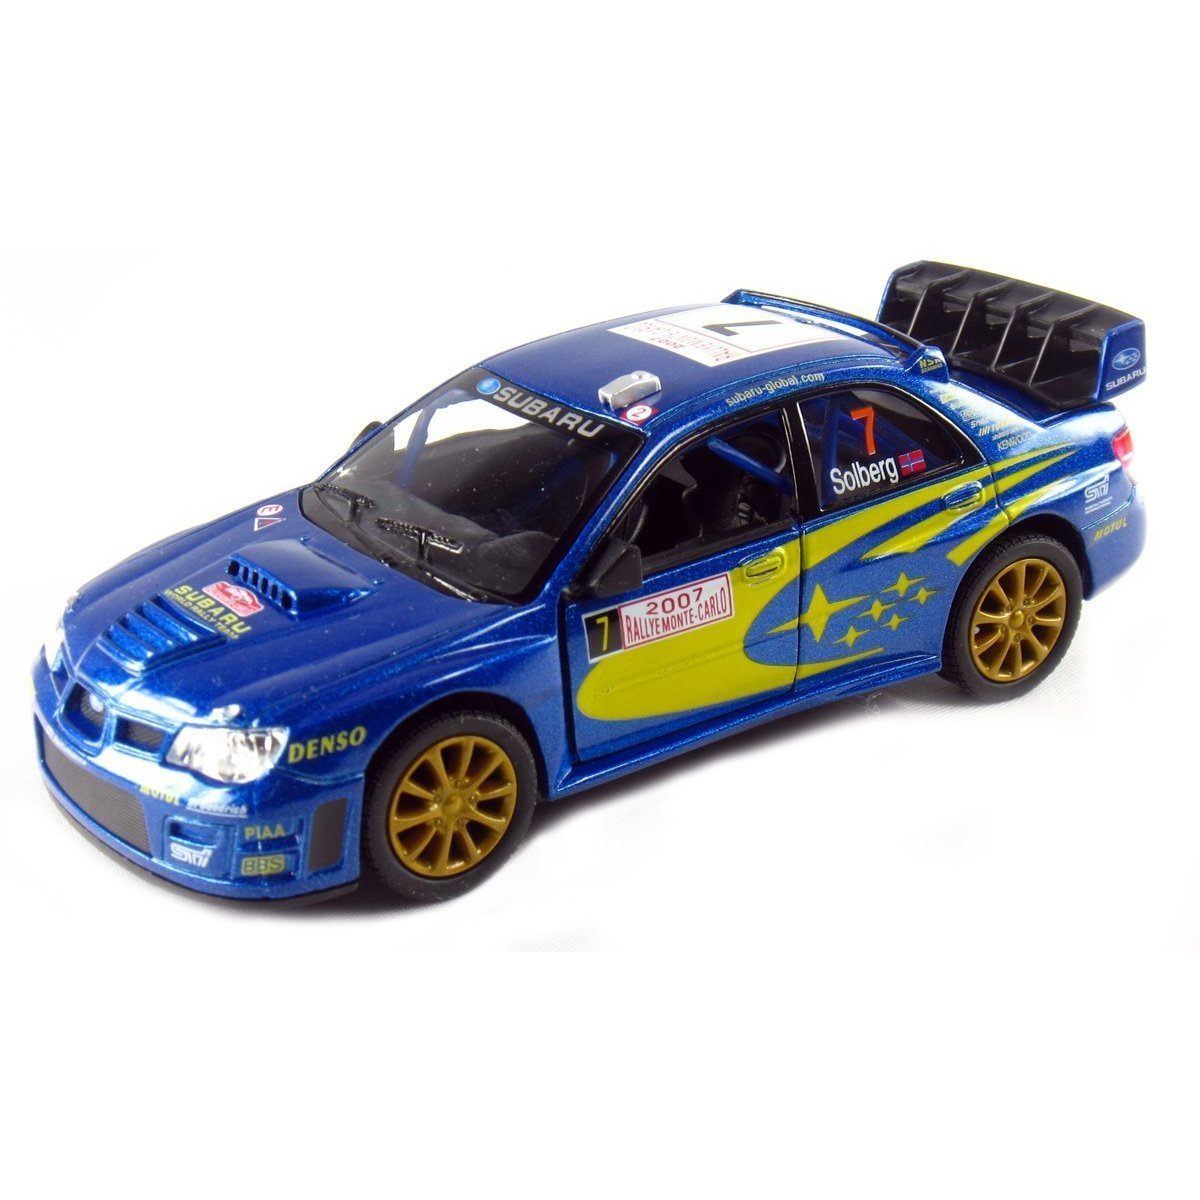 Aircraft (non-military) Models & Kits Tamiya Impreza Wrc 08 Body #51364